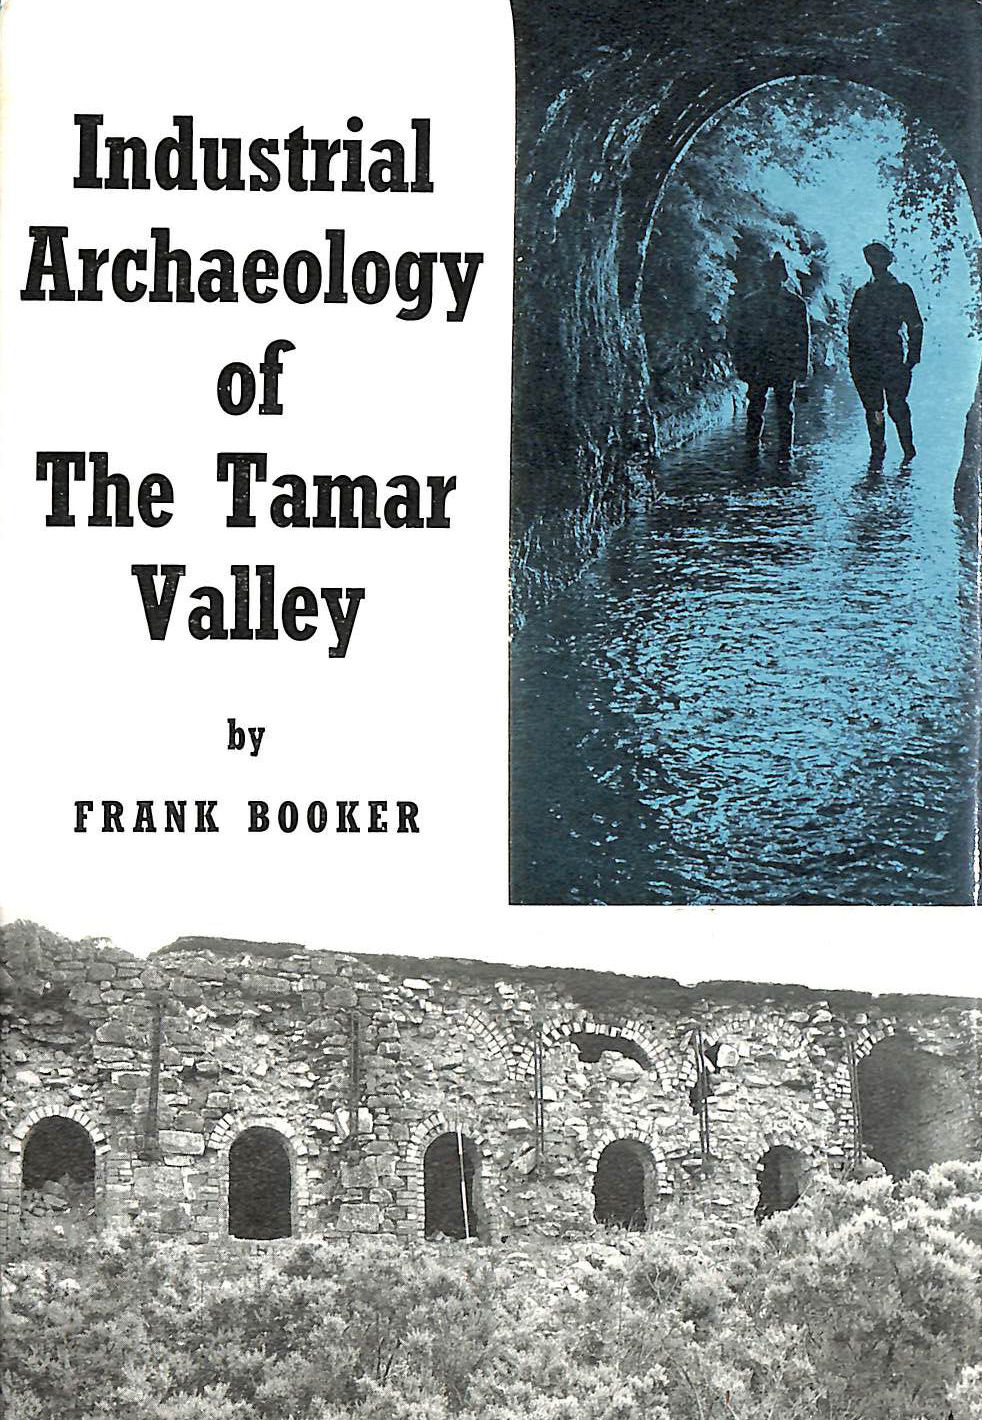 Image for Industrial Archaeology of the Tamar Valley (Industrial Archaeology of British Isles)